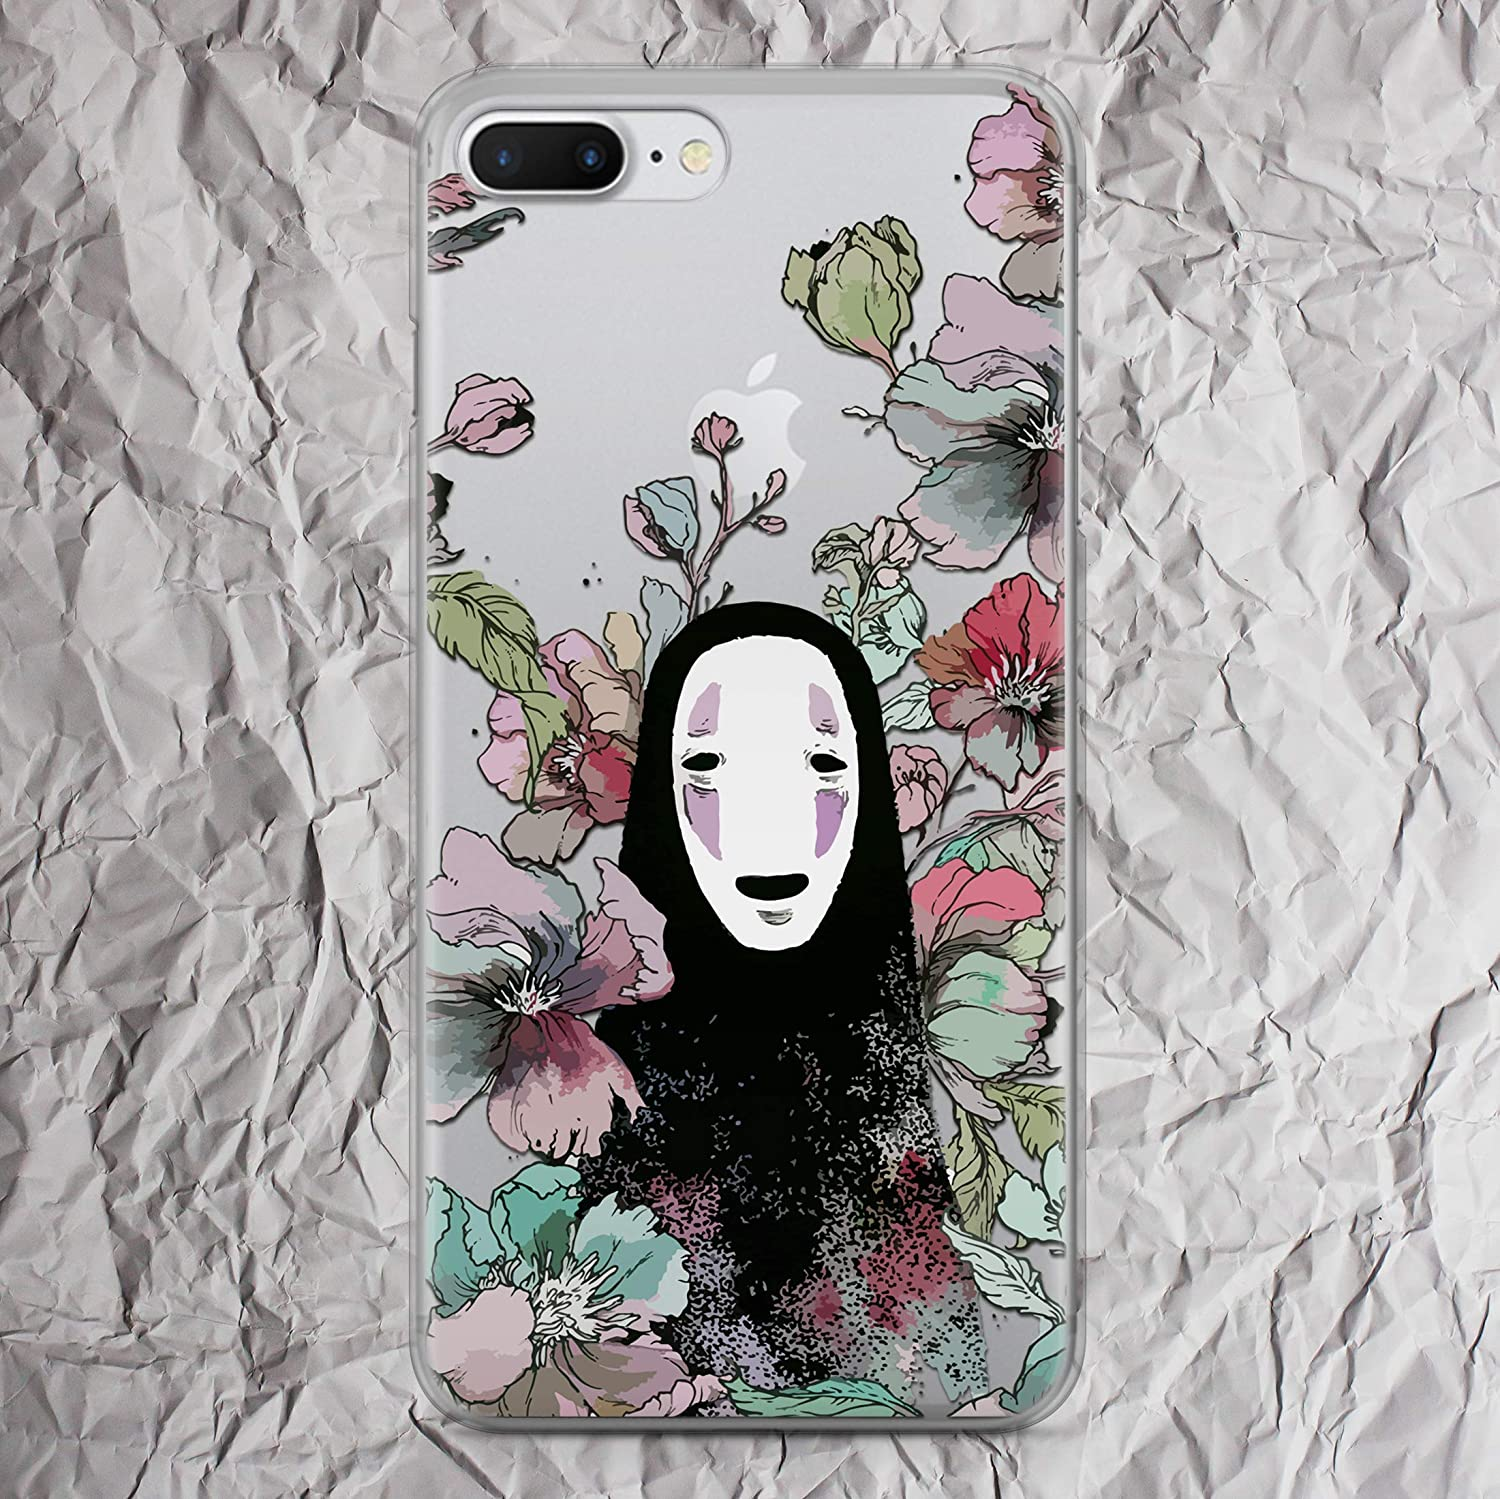 Spirited Away Kaonashi Phone Case No Face Man for iPhone X 7 8 6 6s plus 5 5s se 5se 4 4s Soot Sprites Anime Case Studio Ghibli collection fandom Gifts Clear Transparent Cell Phone Silicone TPU Cover